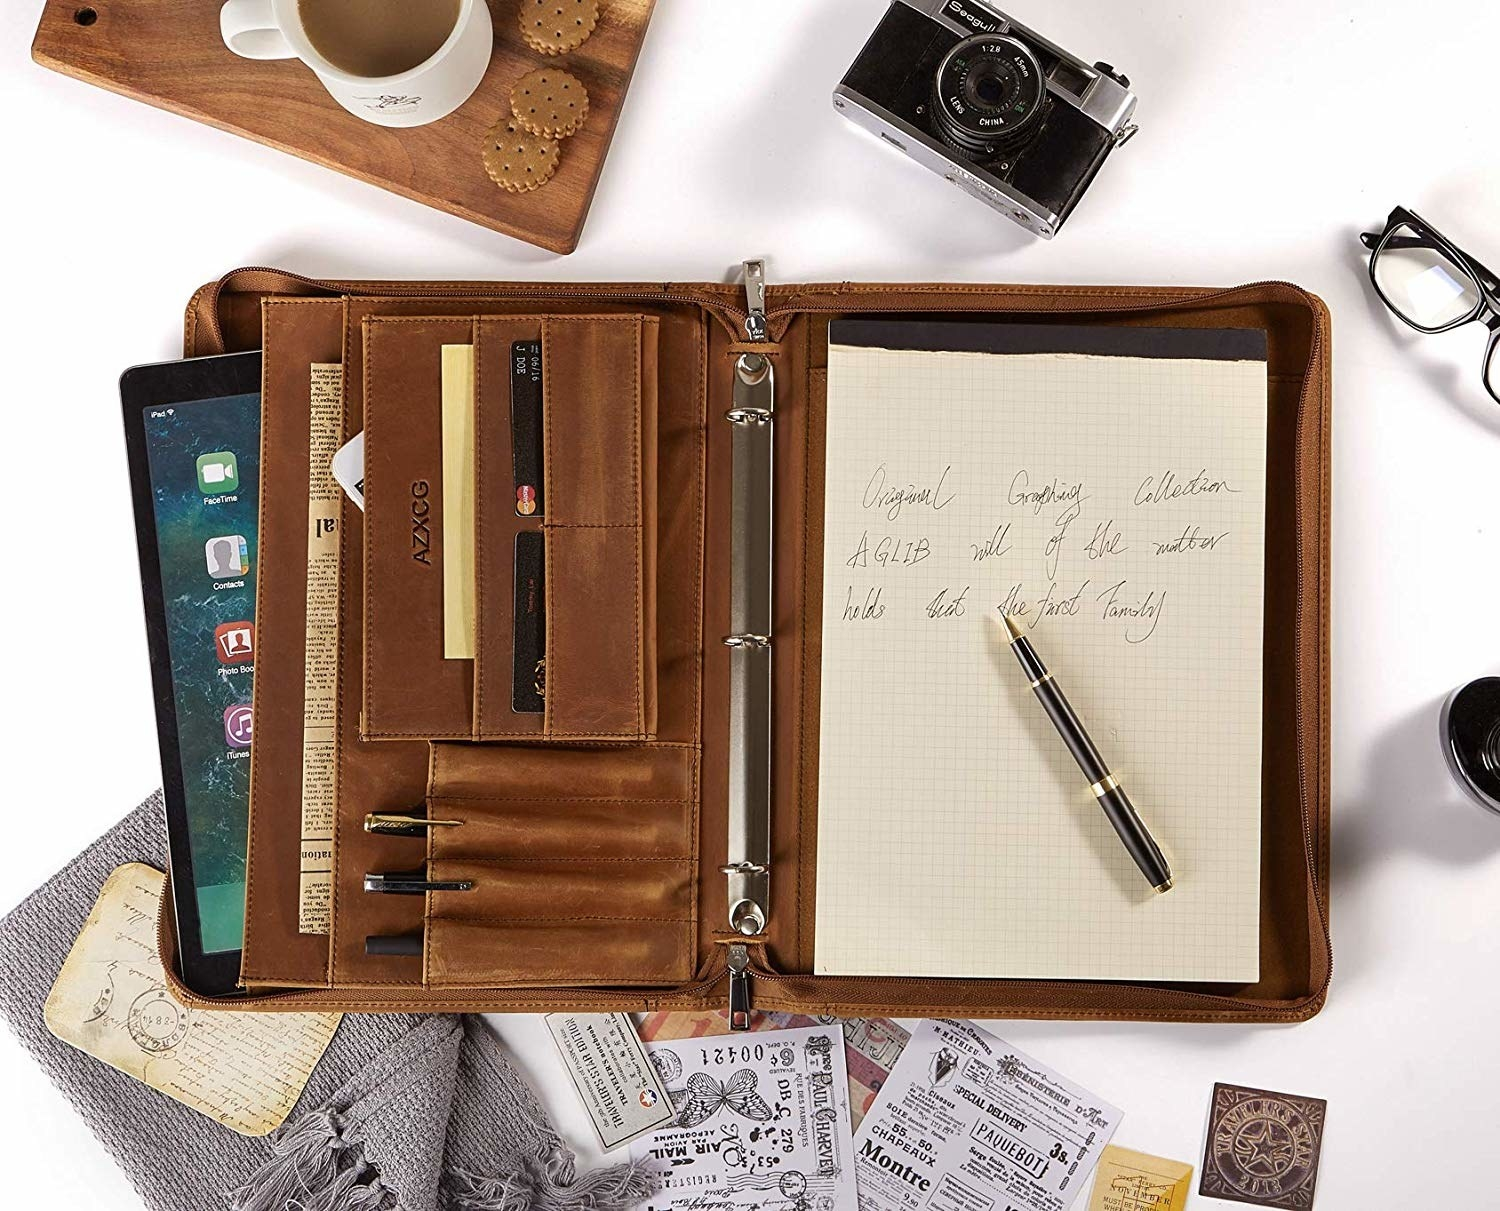 An open three ring portfolio with pockets for cards, an Ipad, and pens